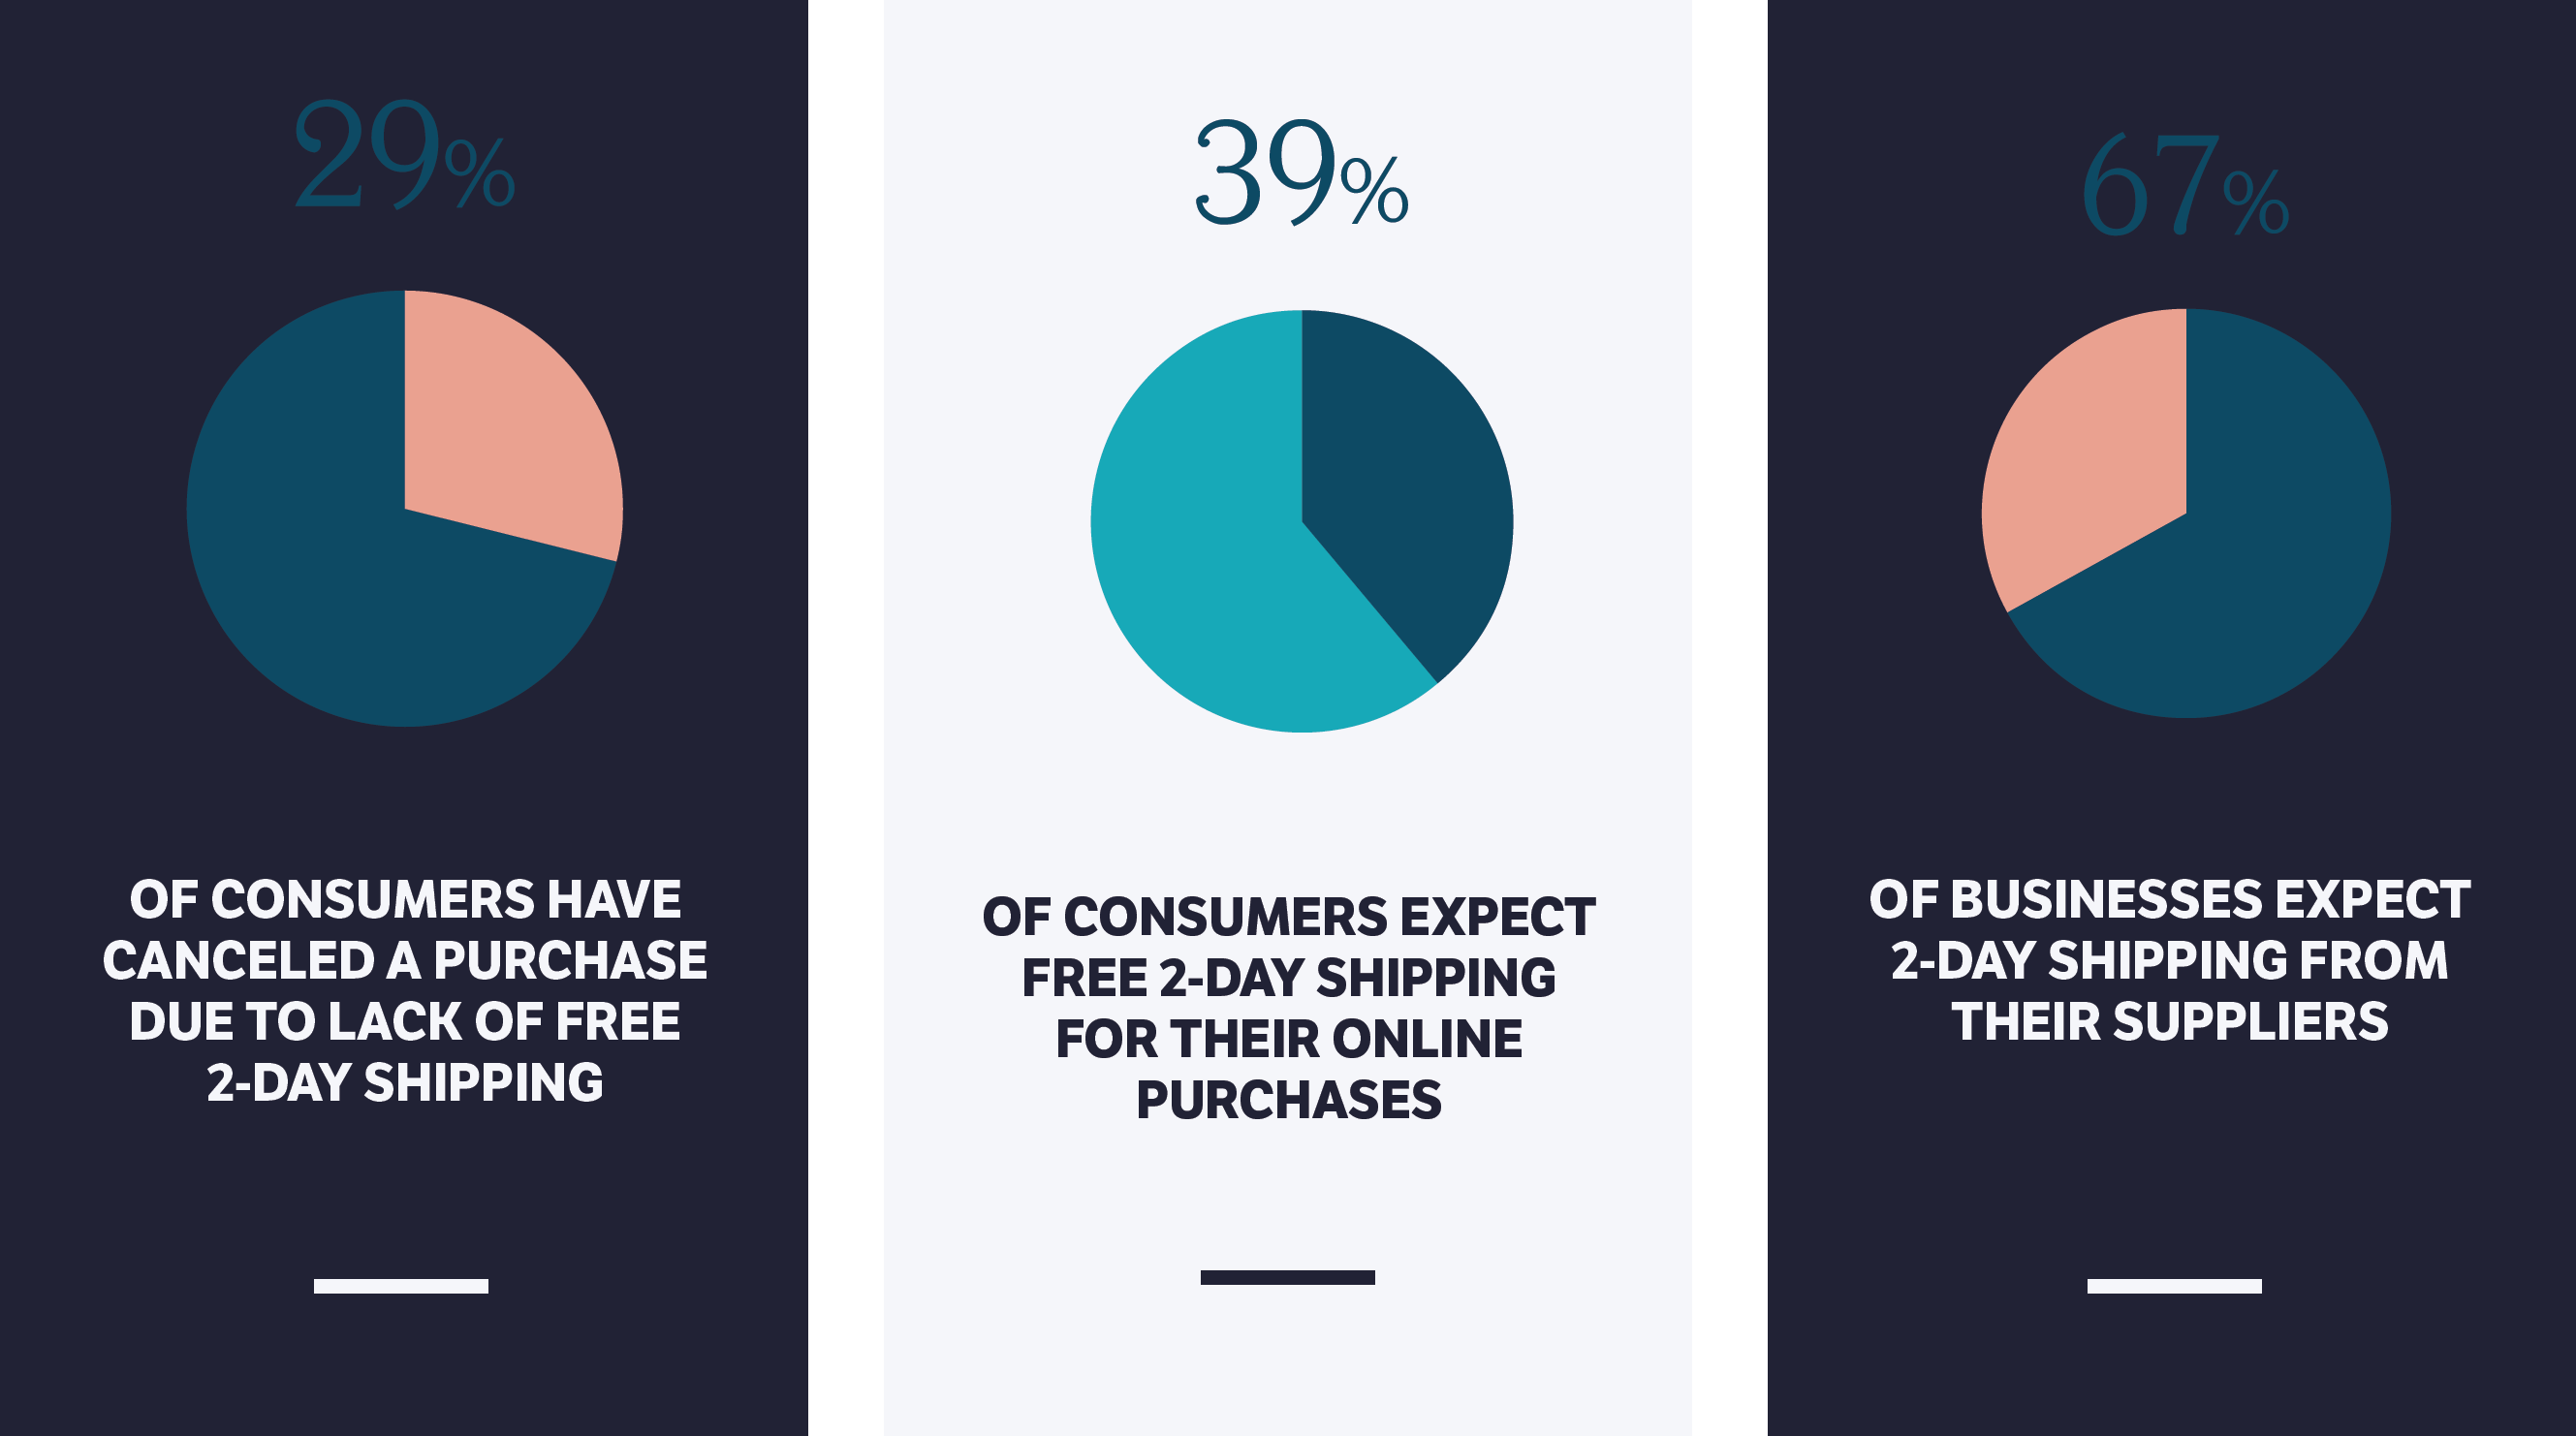 Understanding customer expectations for fast and affordable delivery